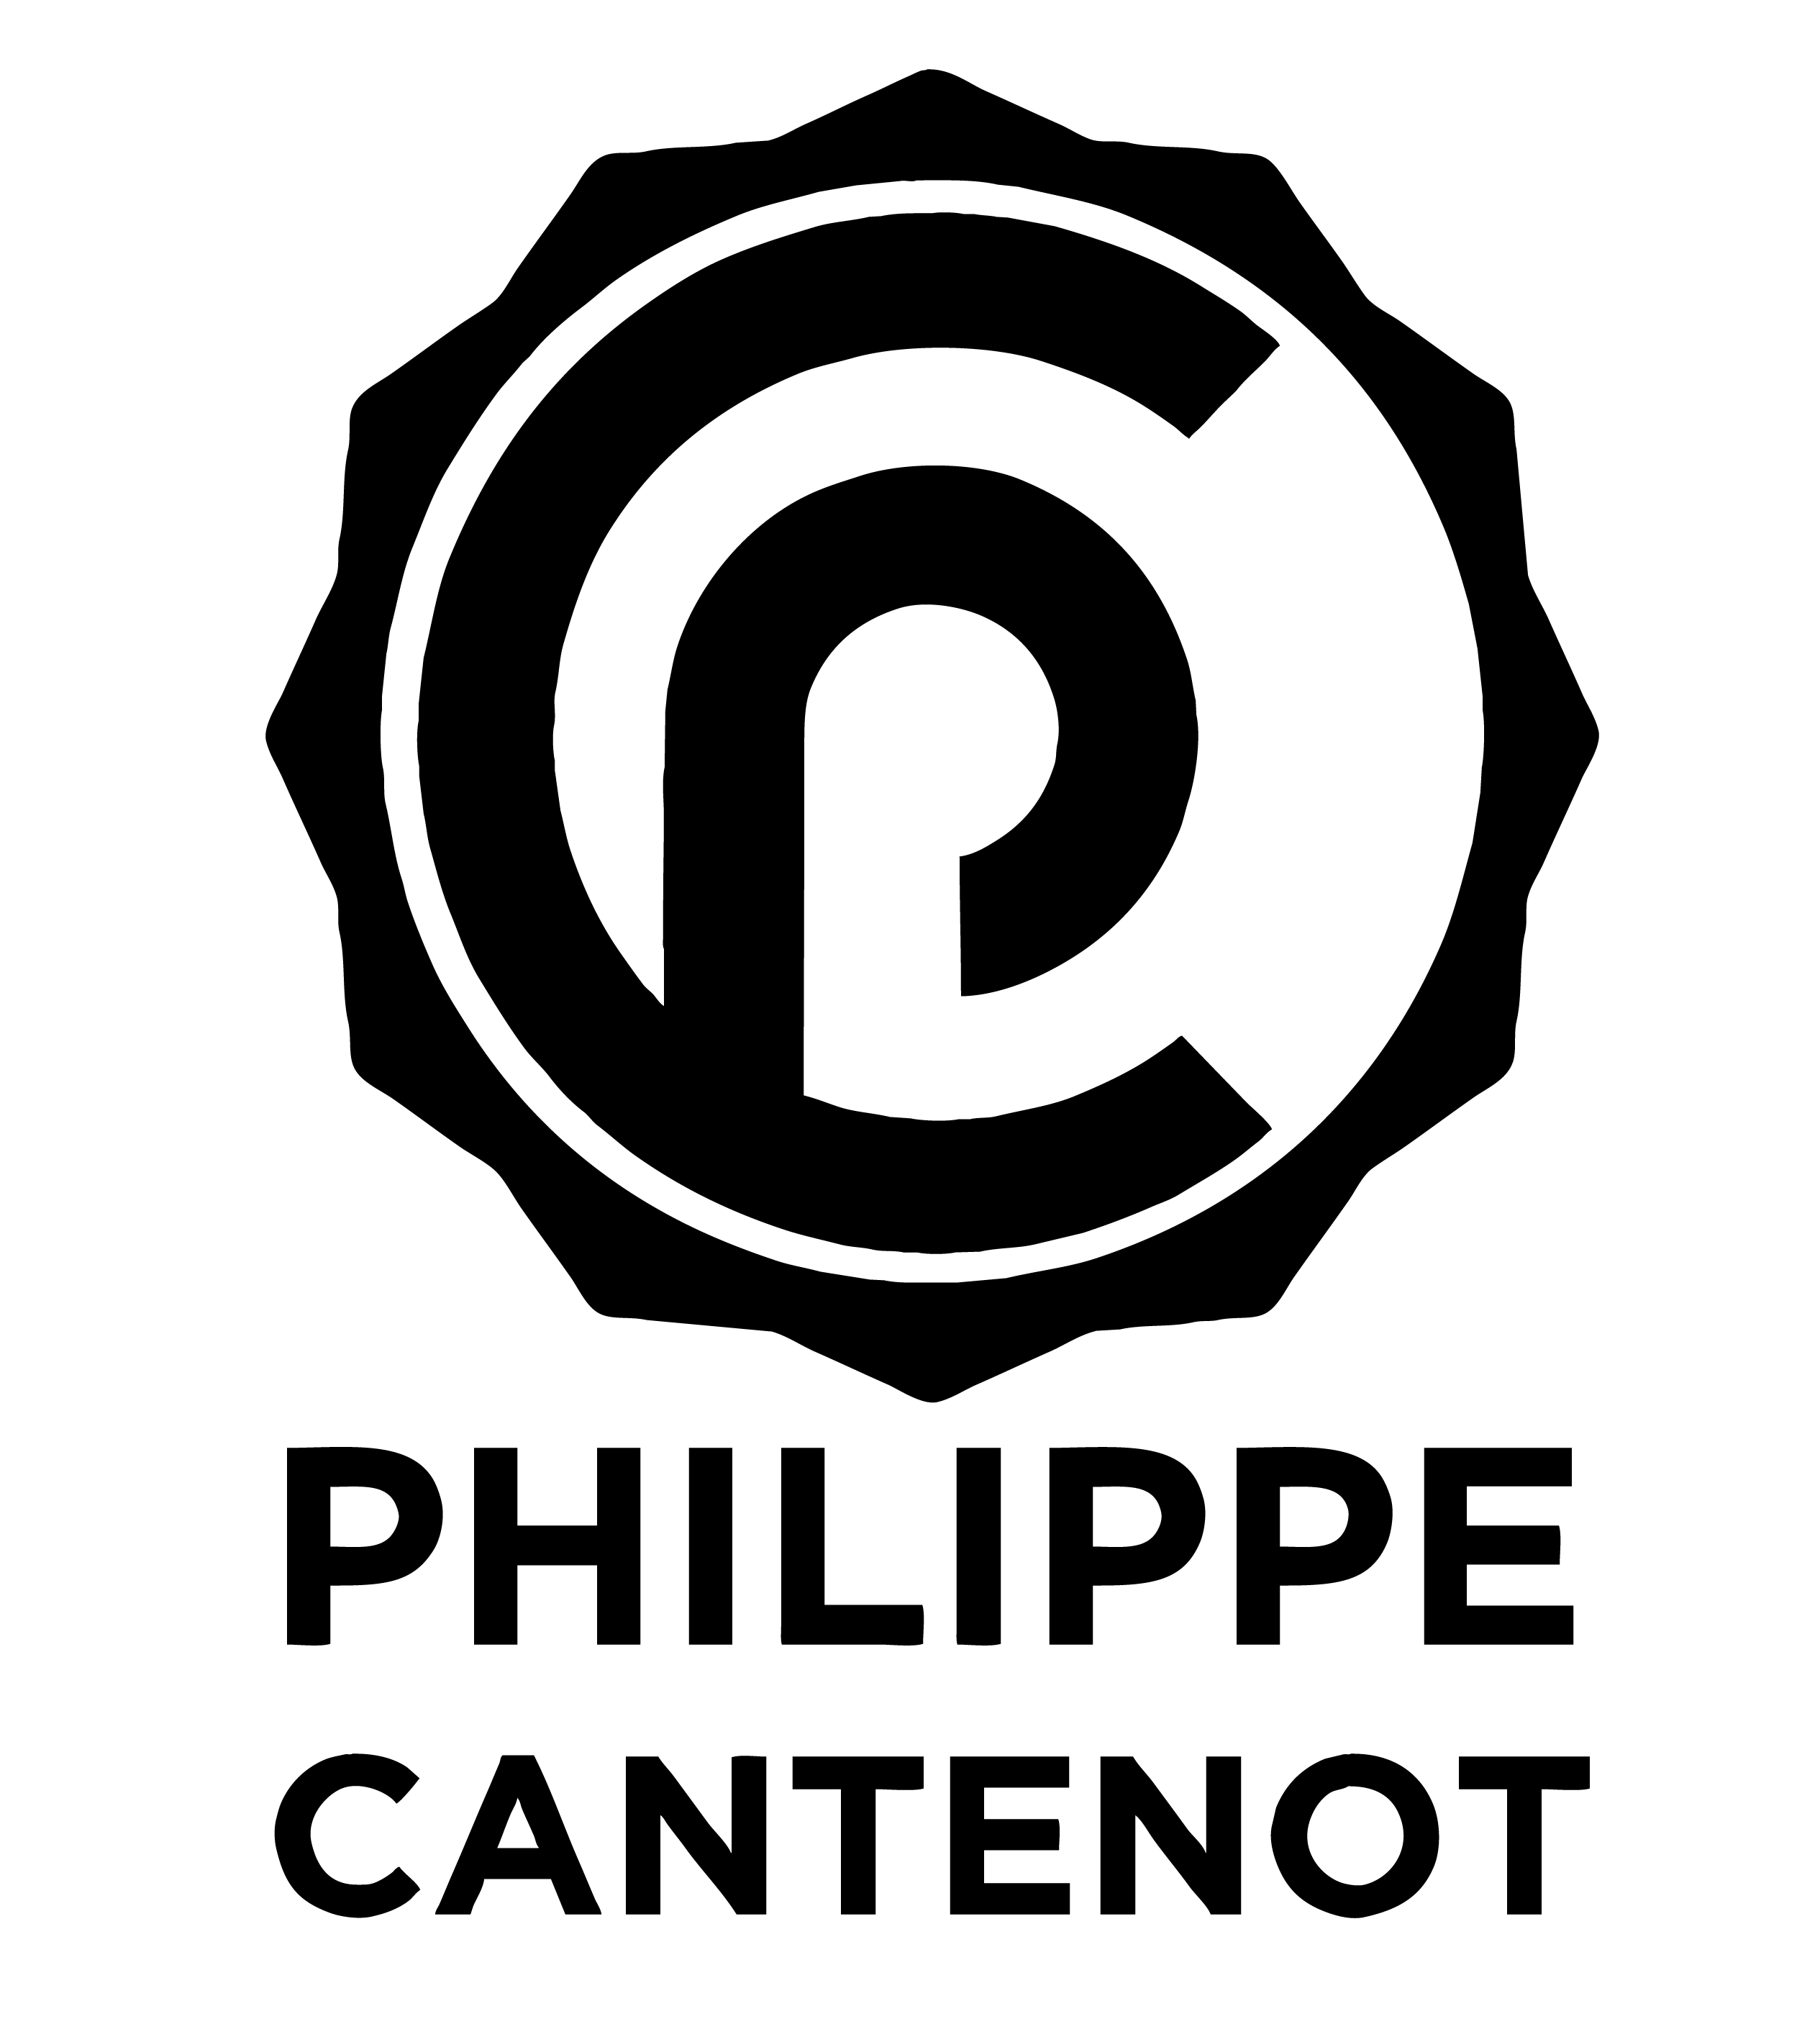 Philippe Cantenot - Shop